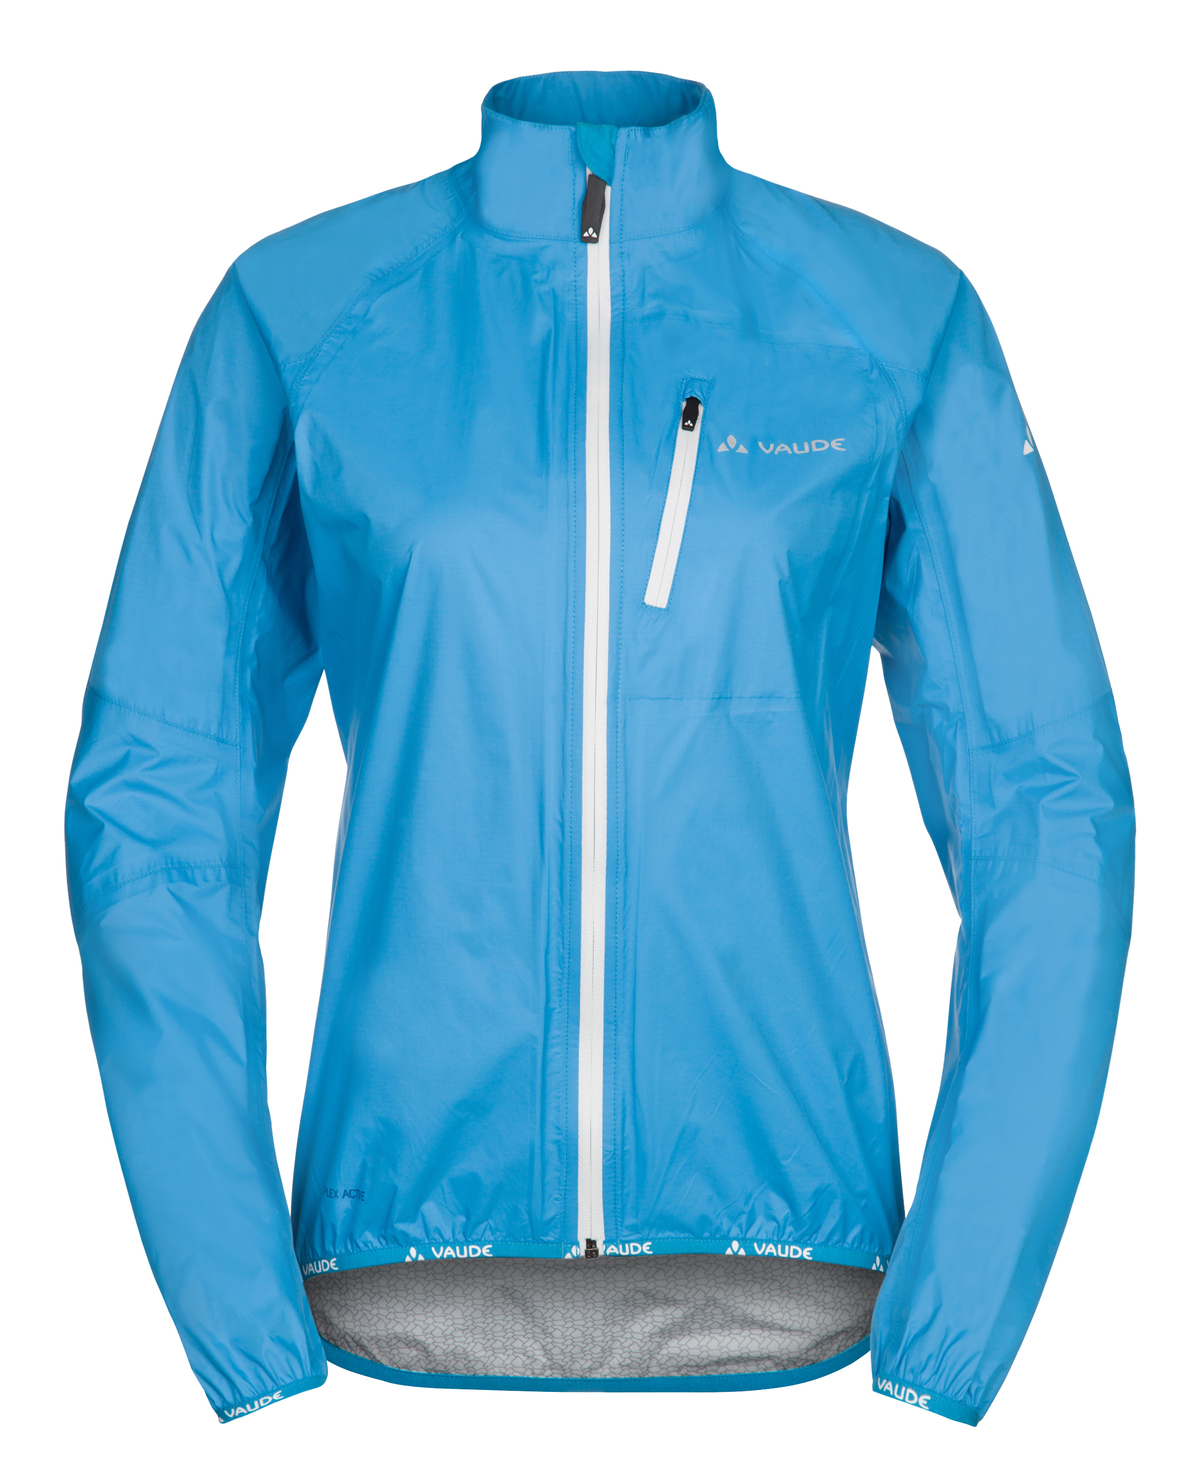 VAUDE Women´s Drop Jacket III teal blue Größe 34 - schneider-sports